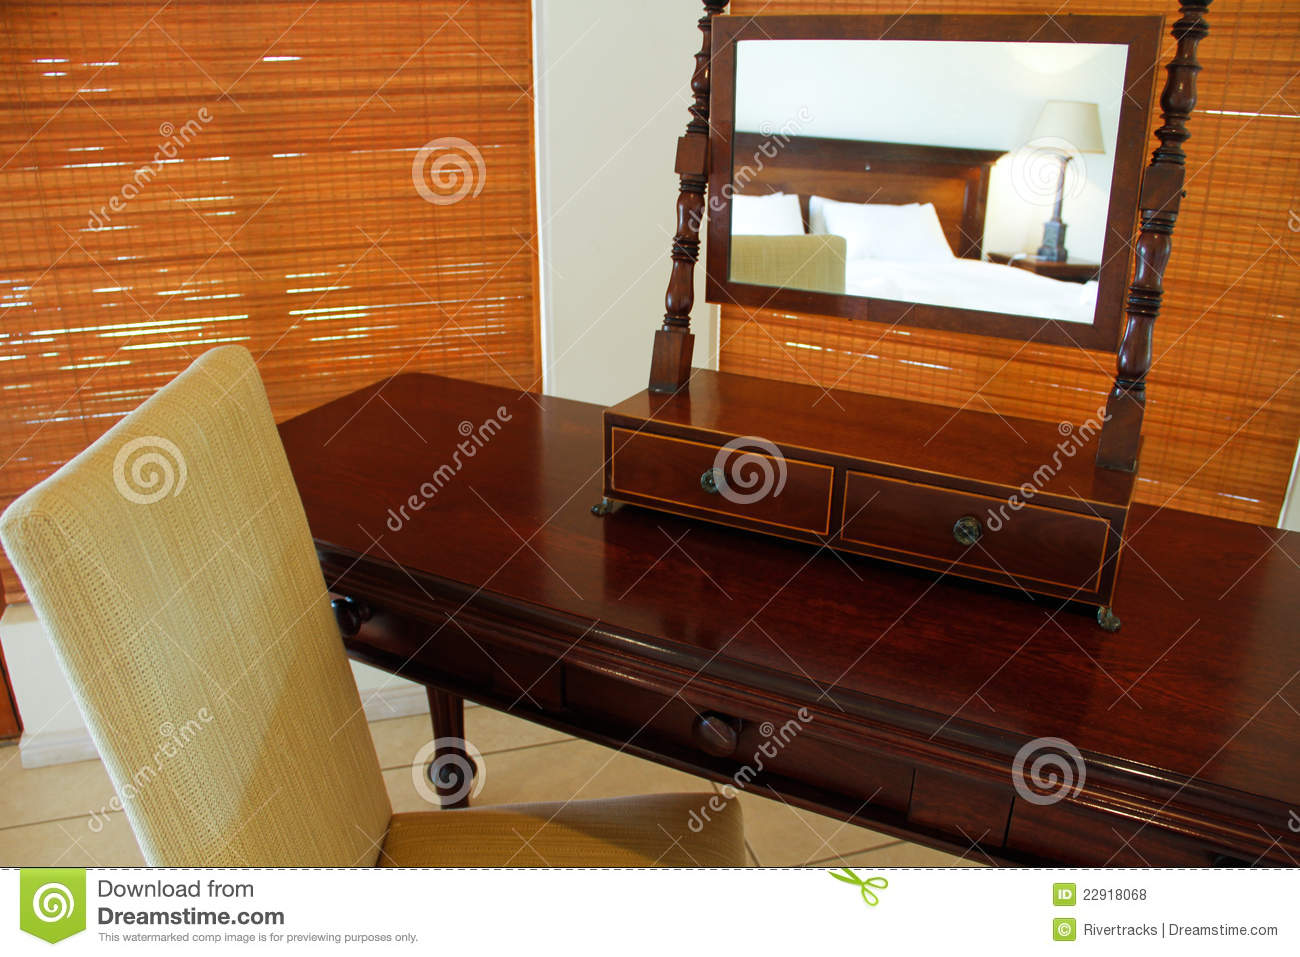 Antique dressing table with mirror - Antique Dressing Table With Mirror